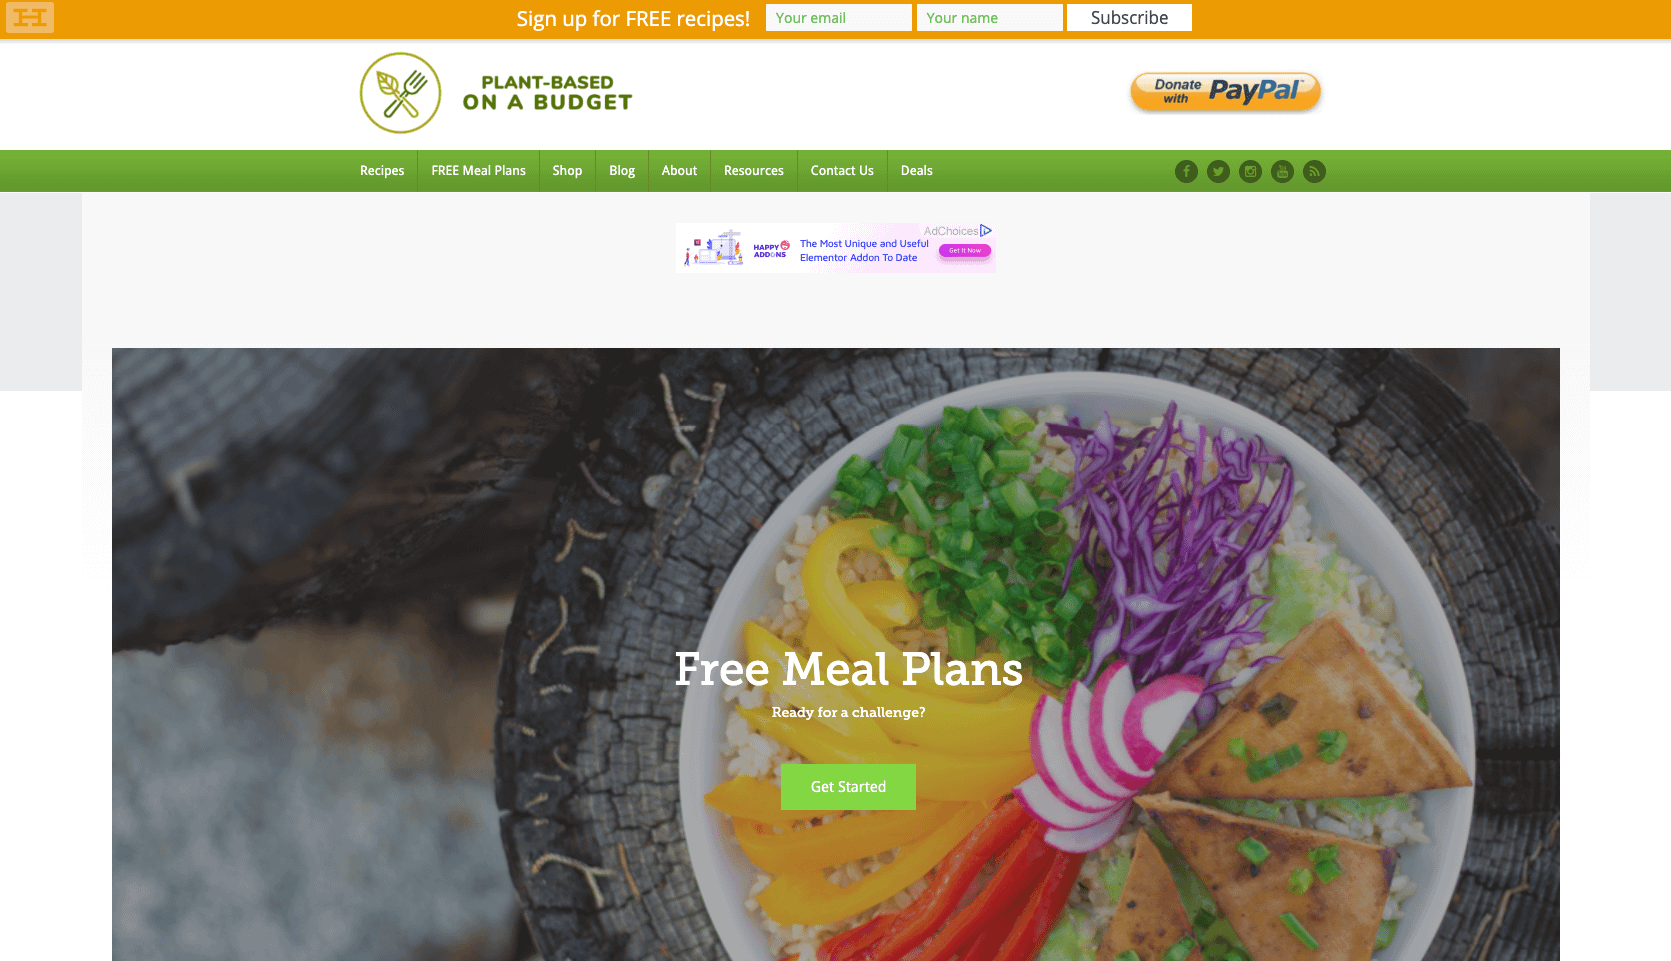 Going vegan is cheap with these free meal plans